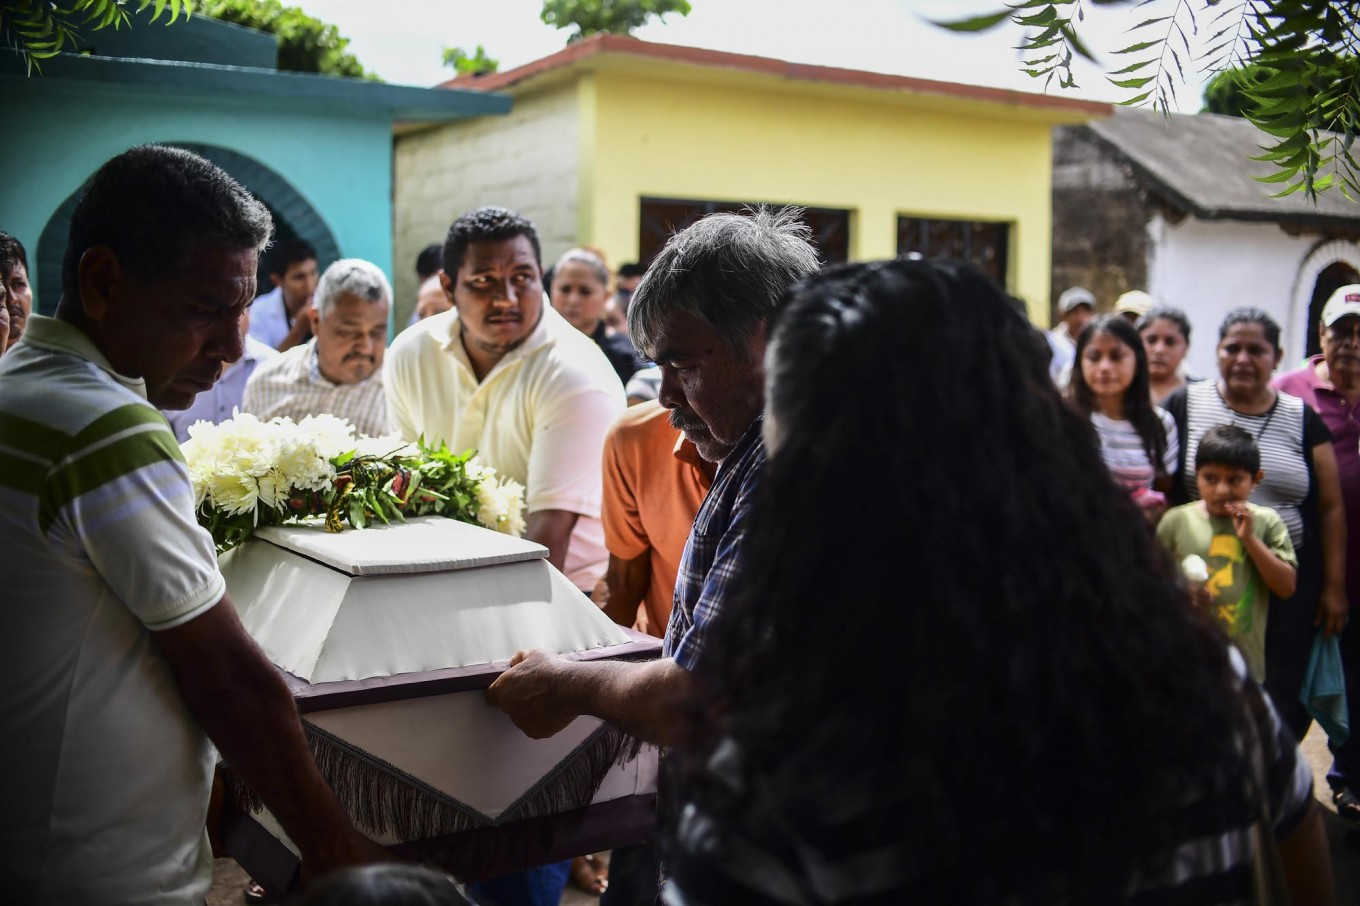 Relatives and friends accompany to the cemetery the remains of a victim of Thursday night's 8.2 magnitude quake, in Juchitan, Oaxaca, Mexico, on September 10, 2017. Rescuers pulled bodies from the rubble and grieving families carried coffins through the streets Saturday after Mexico's biggest earthquake in a century killed 65 people. AFP/ Ronaldo Schemidt